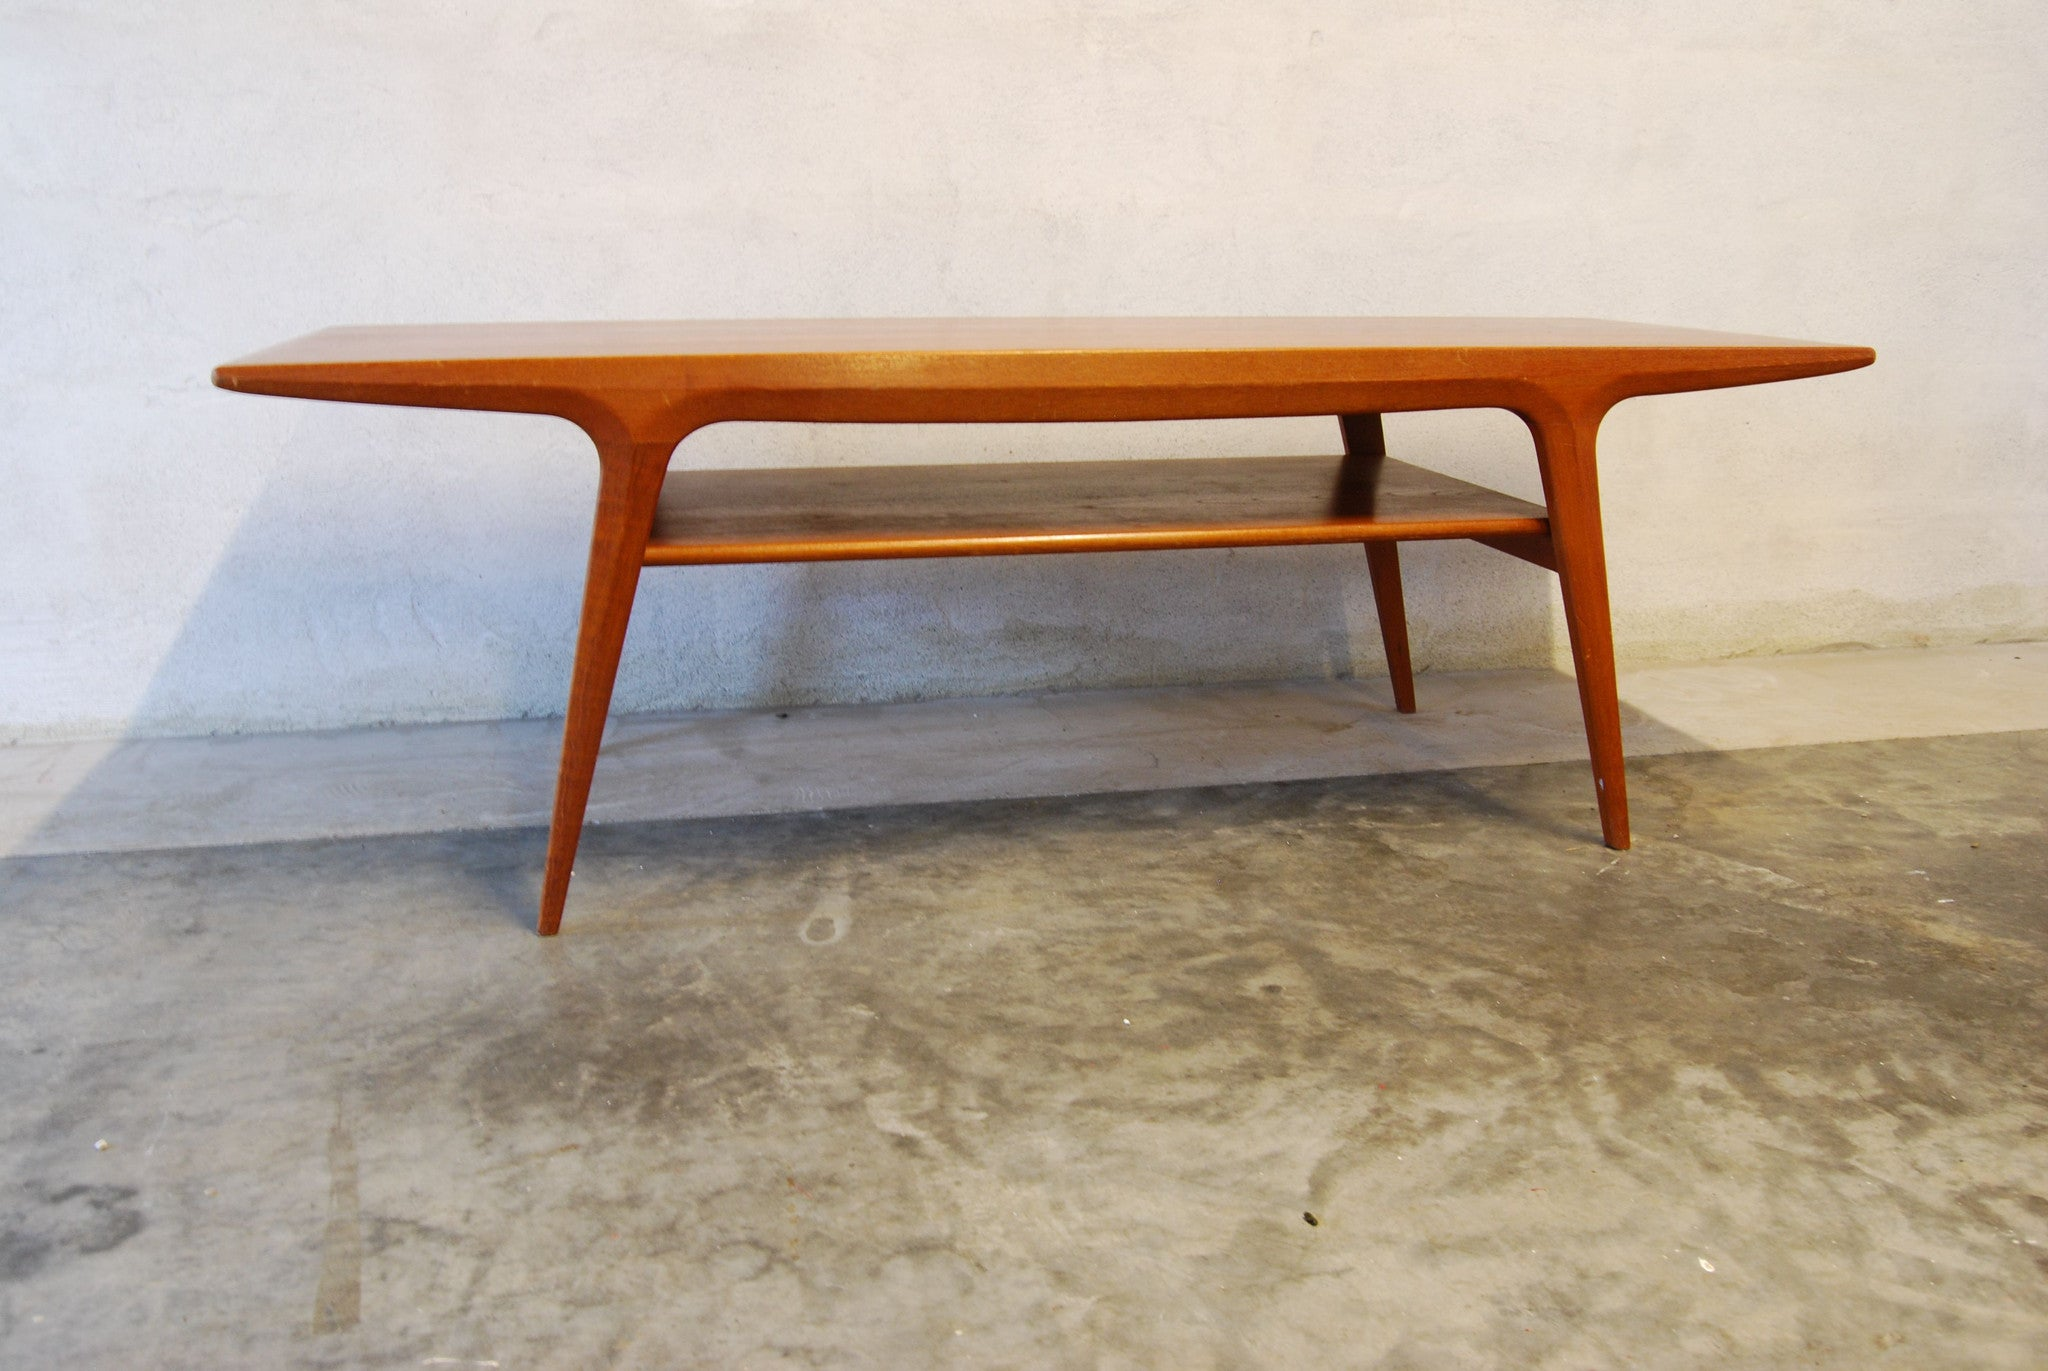 Chase & Sorensen Two-tiered coffee table in teak